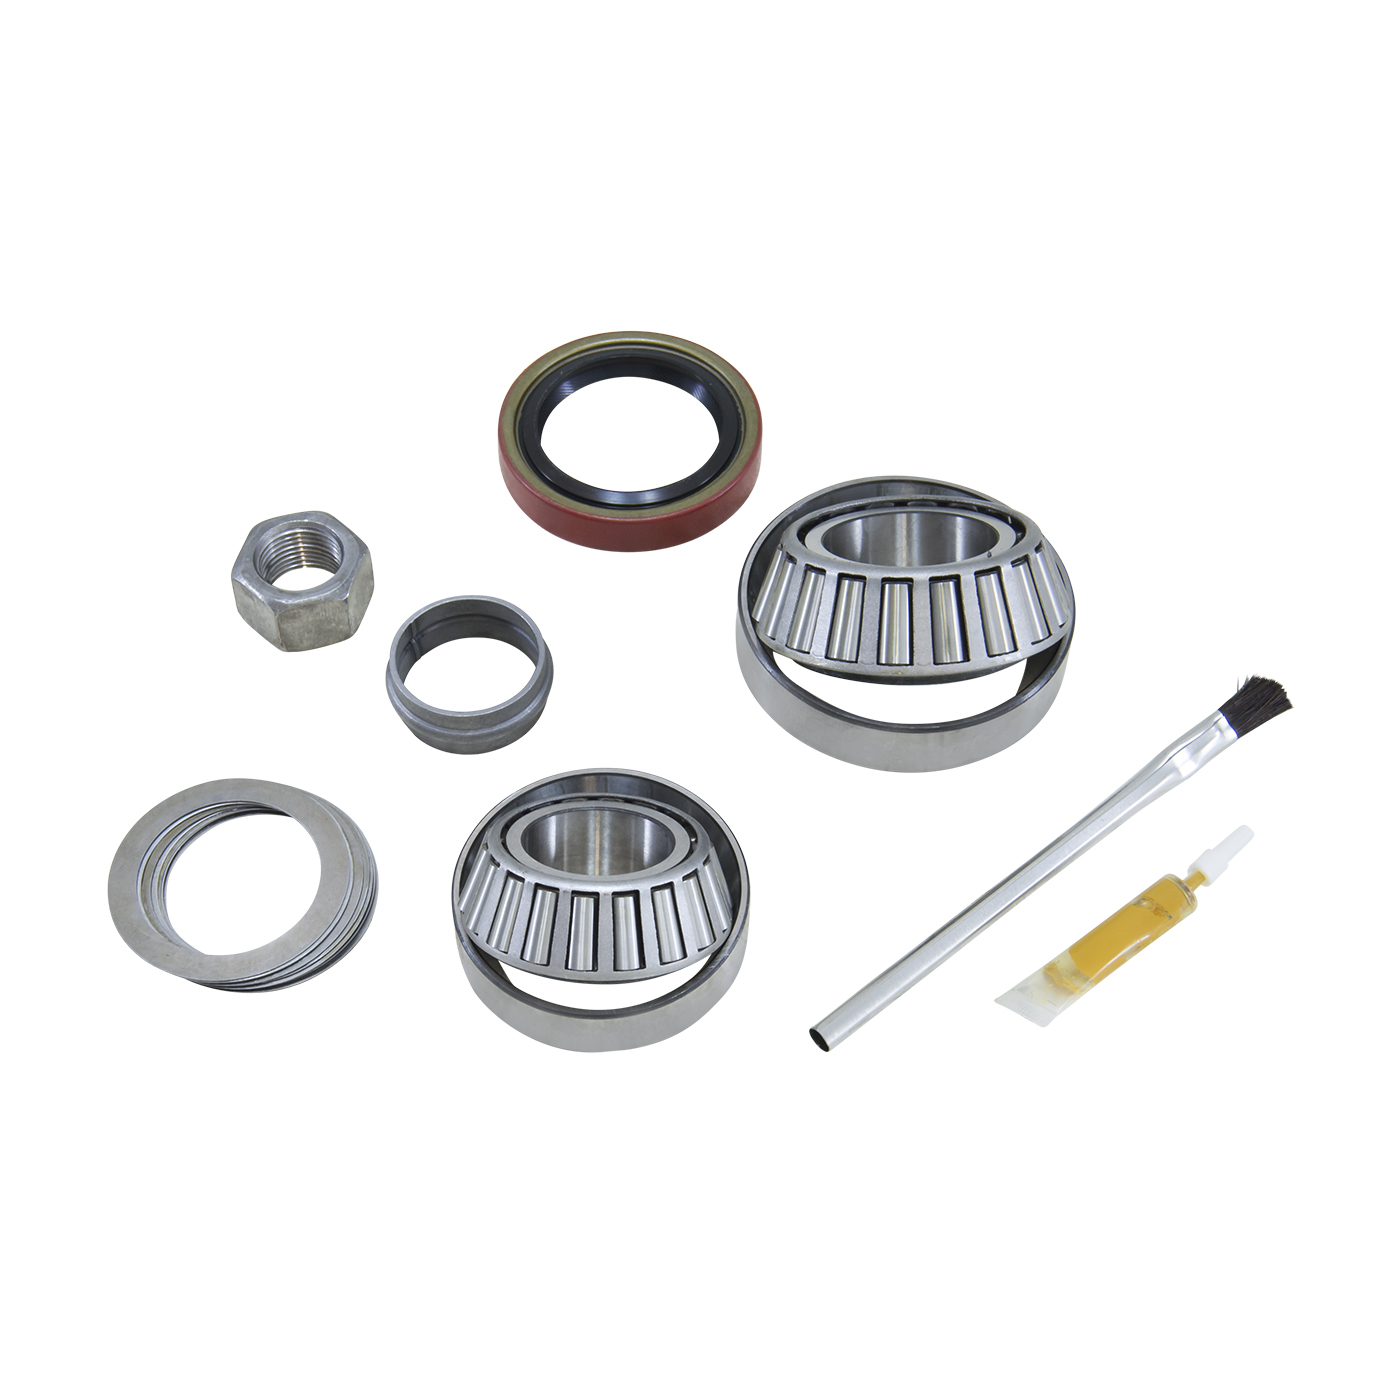 ZPKGM8.5 - USA Standard Pinion installation kit for GM 8.5